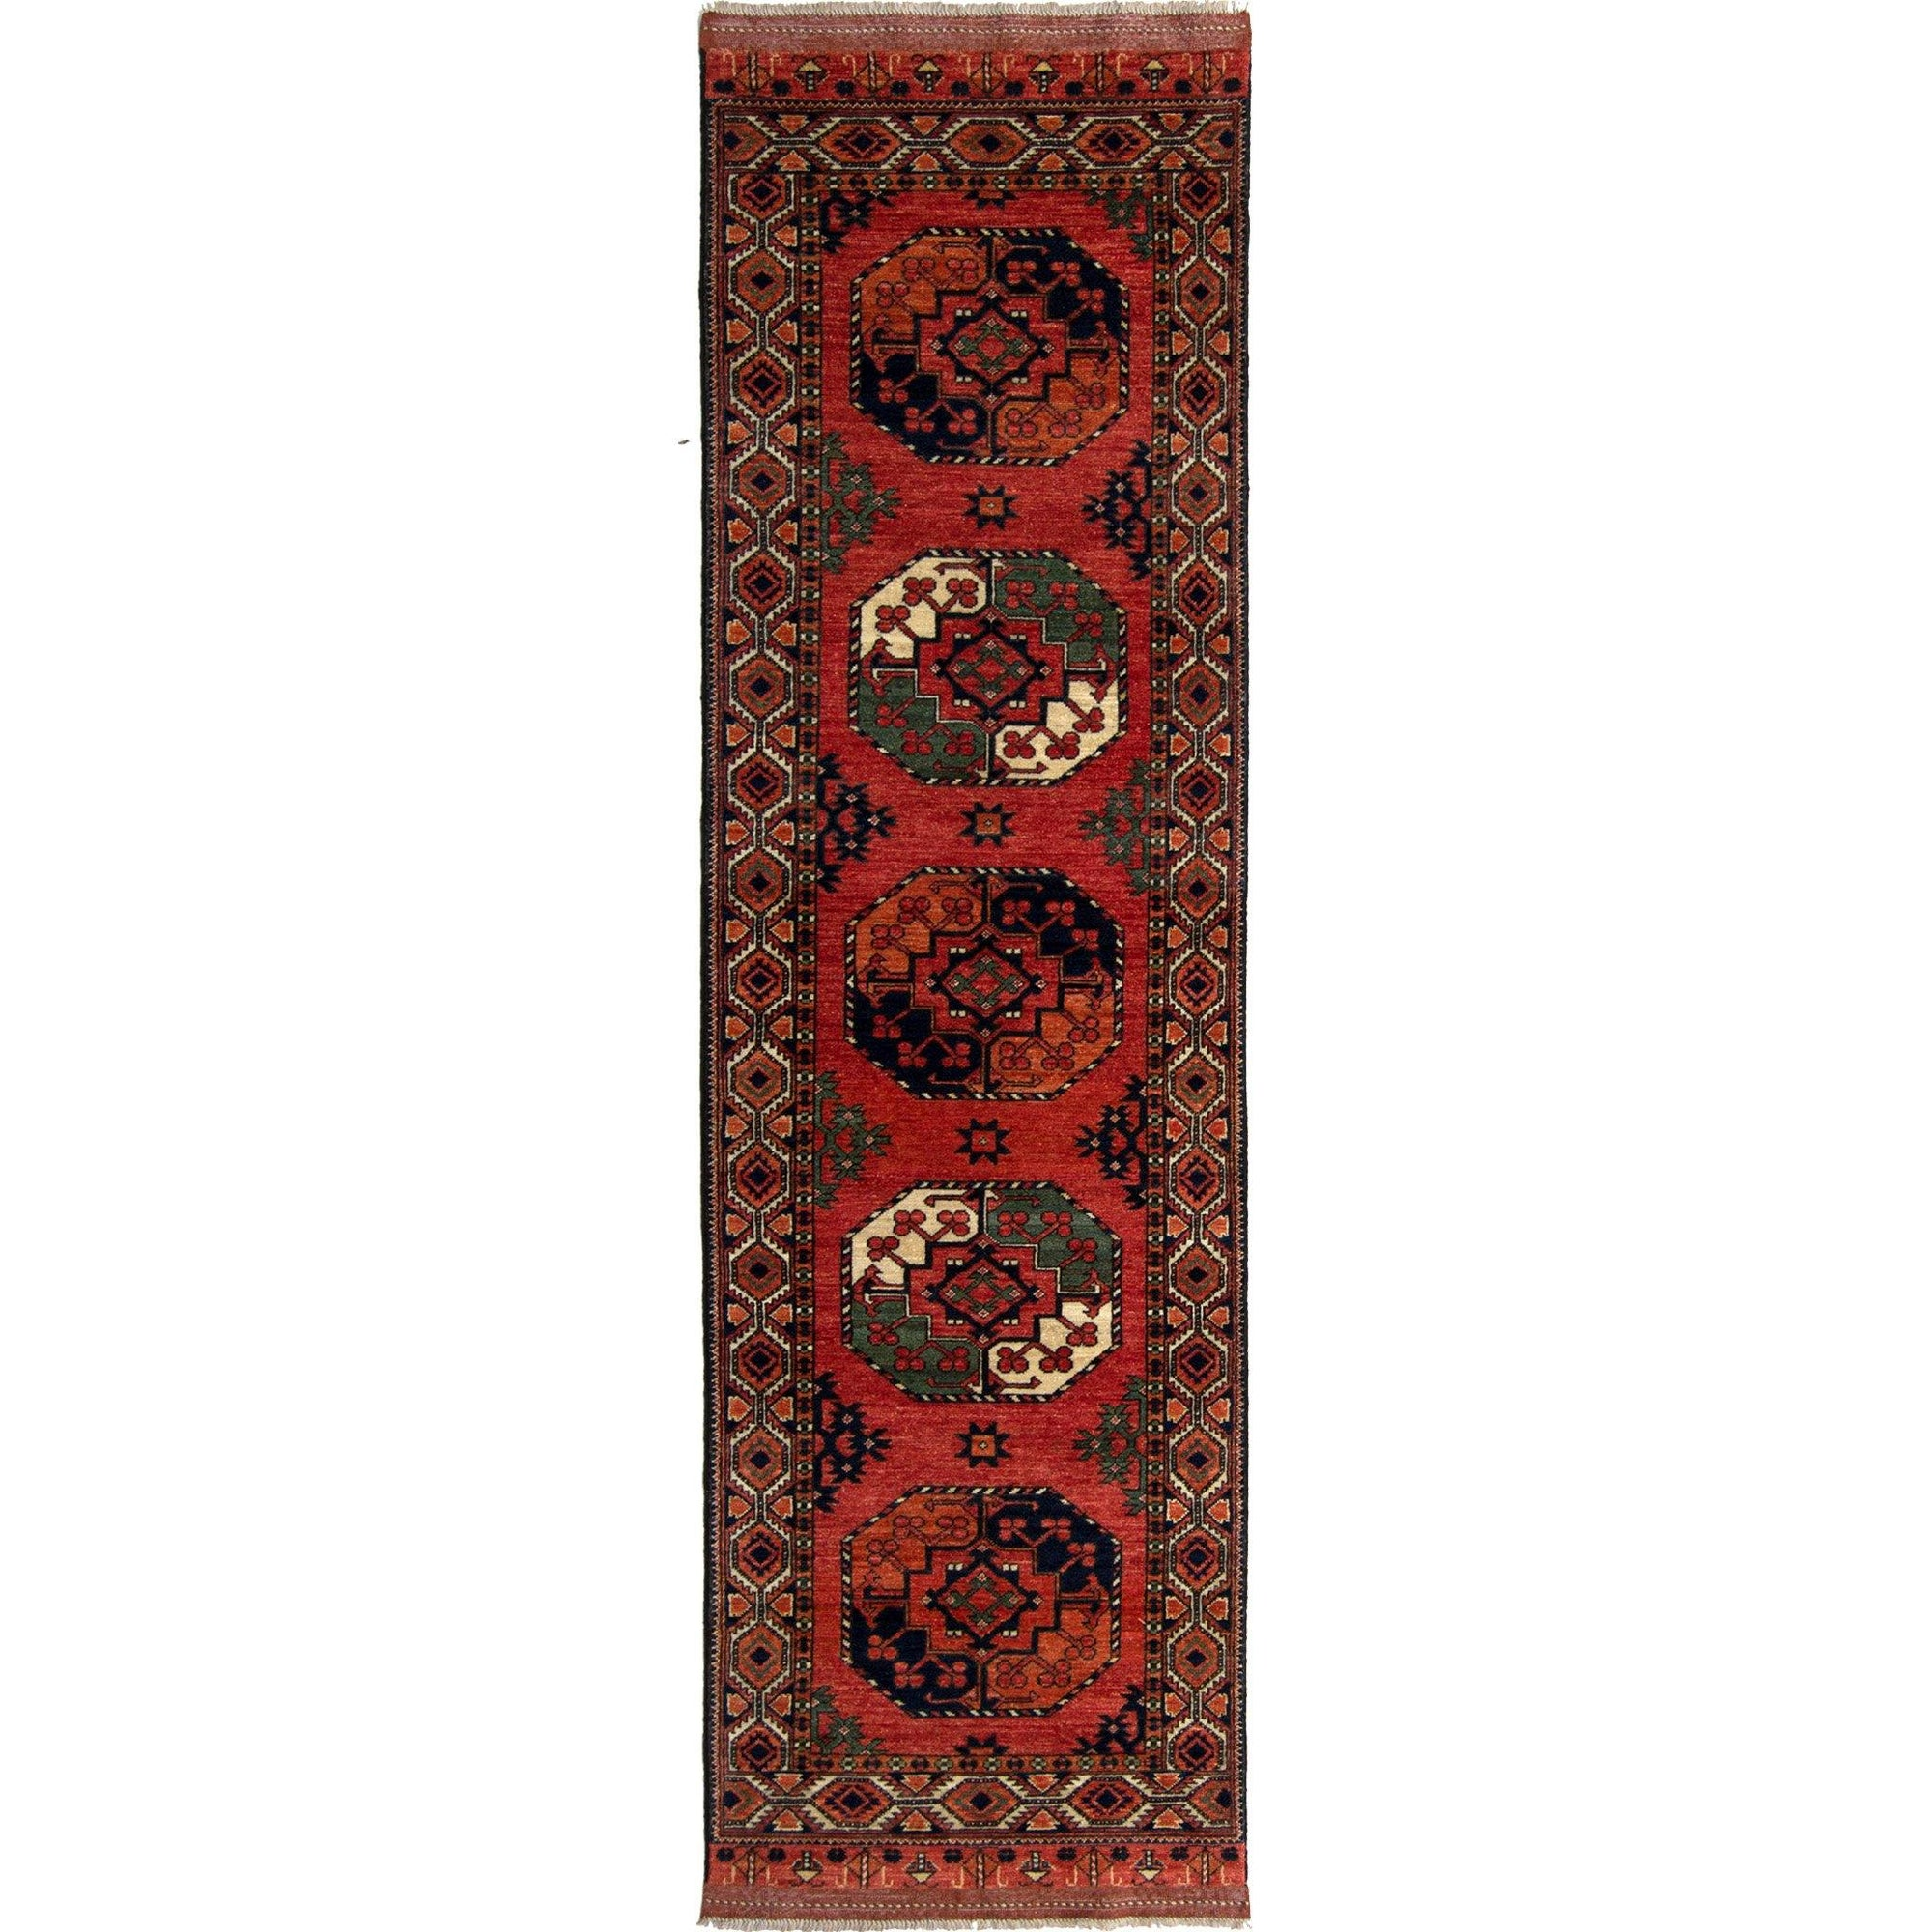 Fine Hand-knotted Tribal Wool Runner 83cm x 280cm Persian-Rug | House-of-Haghi | NewMarket | Auckland | NZ | Handmade Persian Rugs | Hand Knotted Persian Rugs